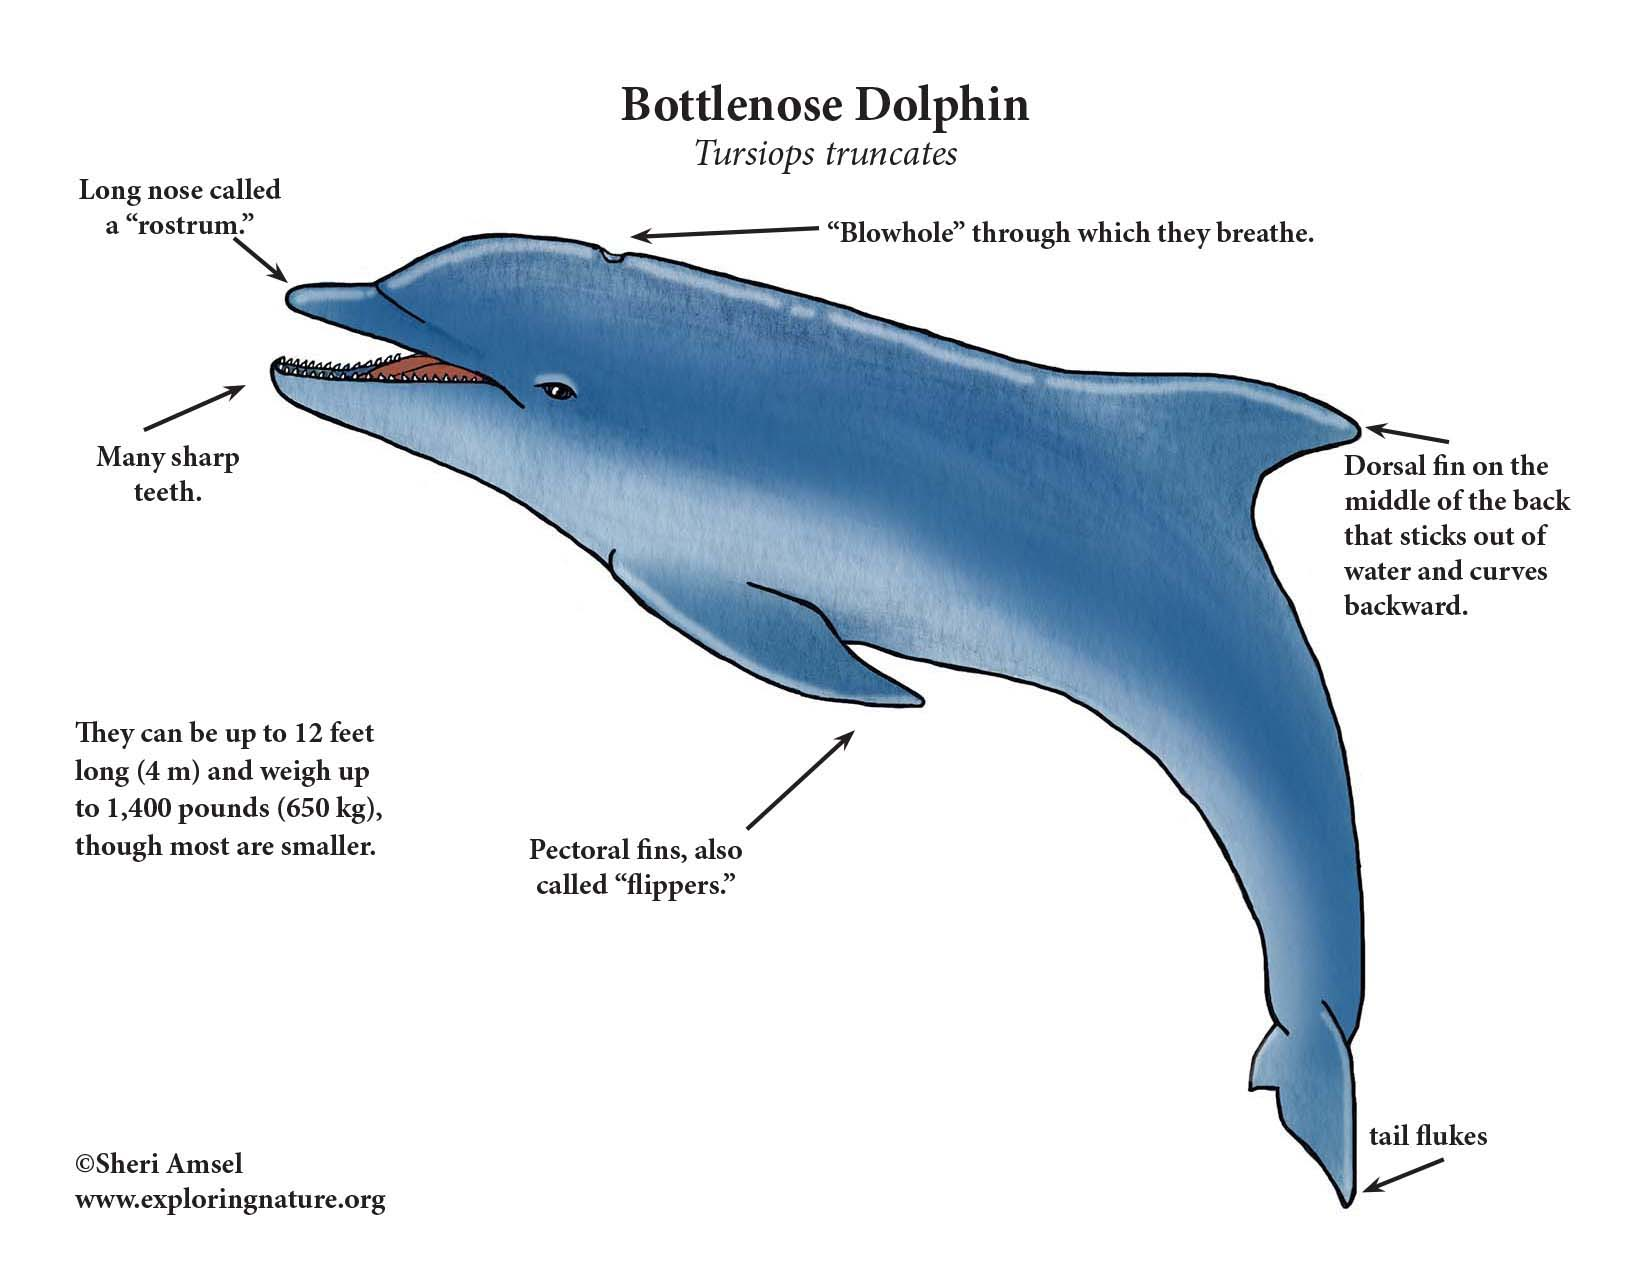 wiring diagram national dolphin dolphin (bottlenose) bottlenose dolphin diagram #11